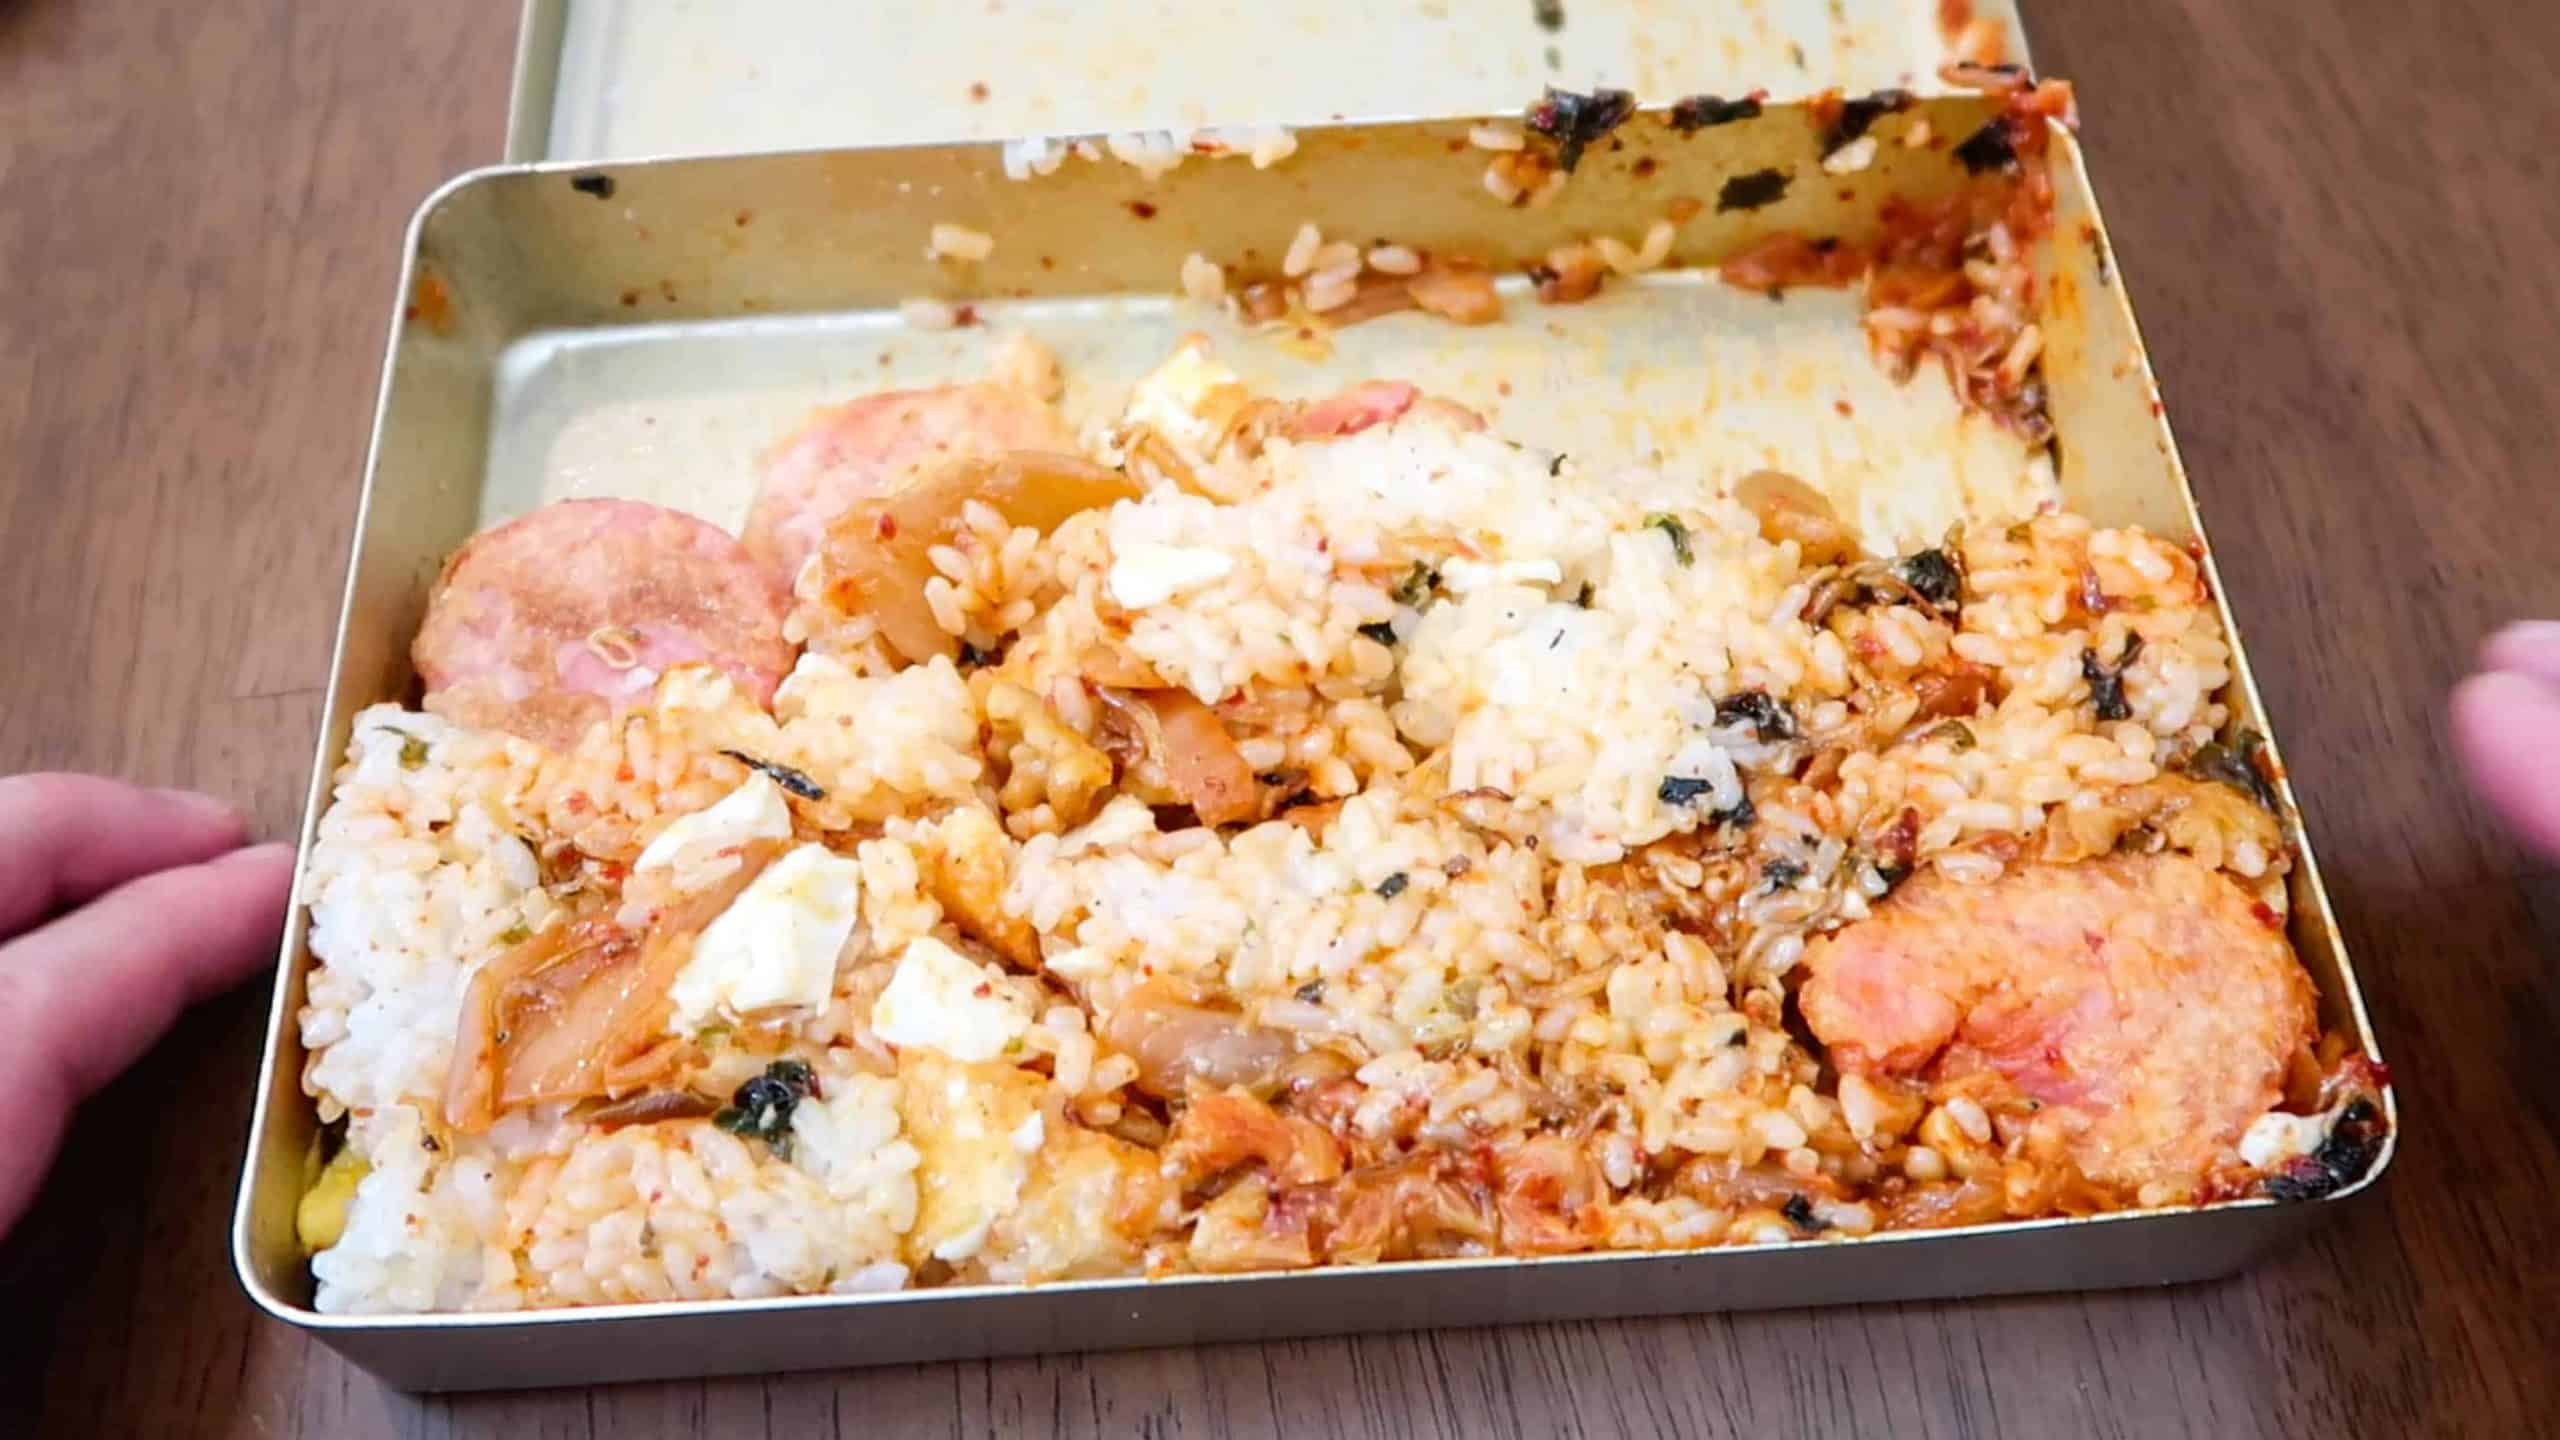 Korean Lunch Box - After Mixing